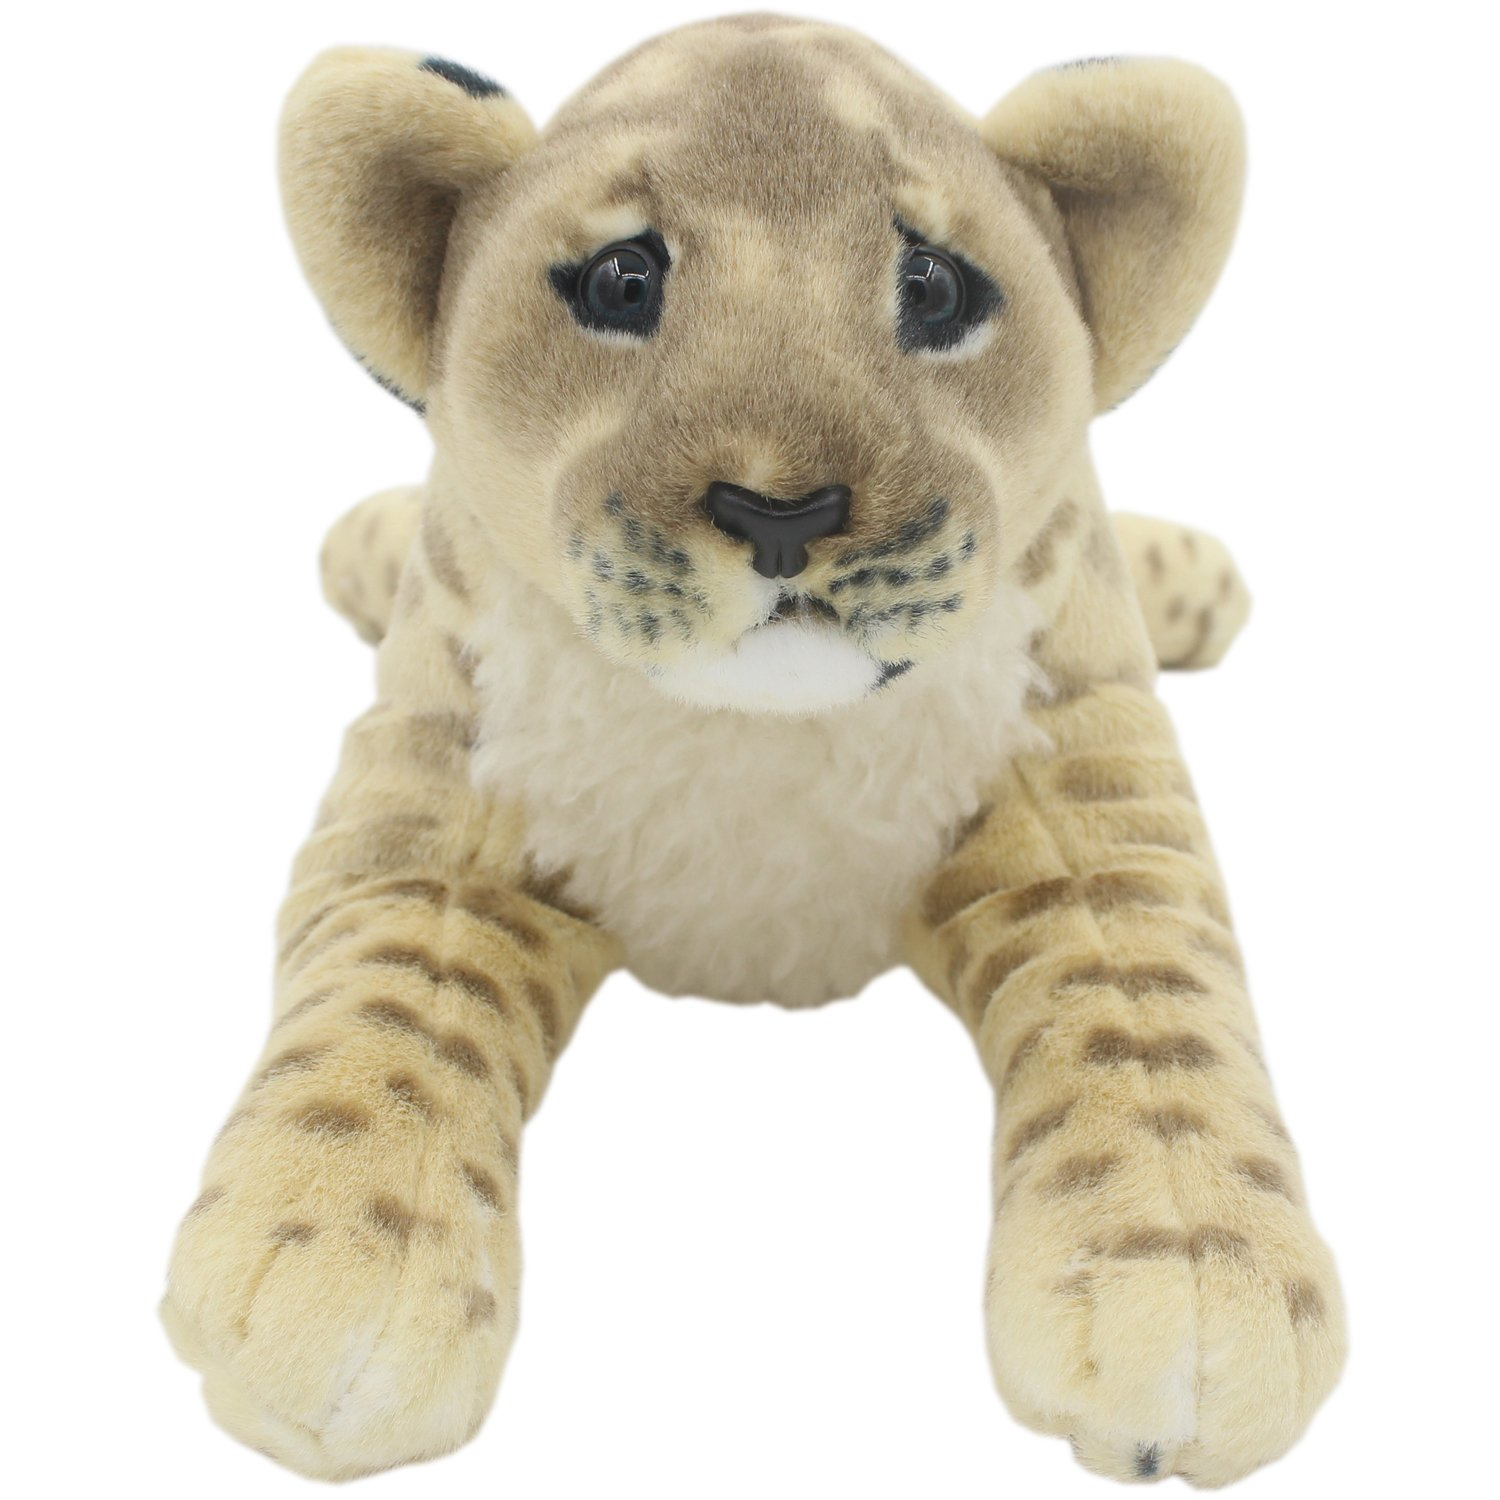 TAGLN Realistic Stuffed Animals Toys Lion Plush Tiger Leopard Panther Pillows (Brown Lioness, 19 Inch) by TAGLN